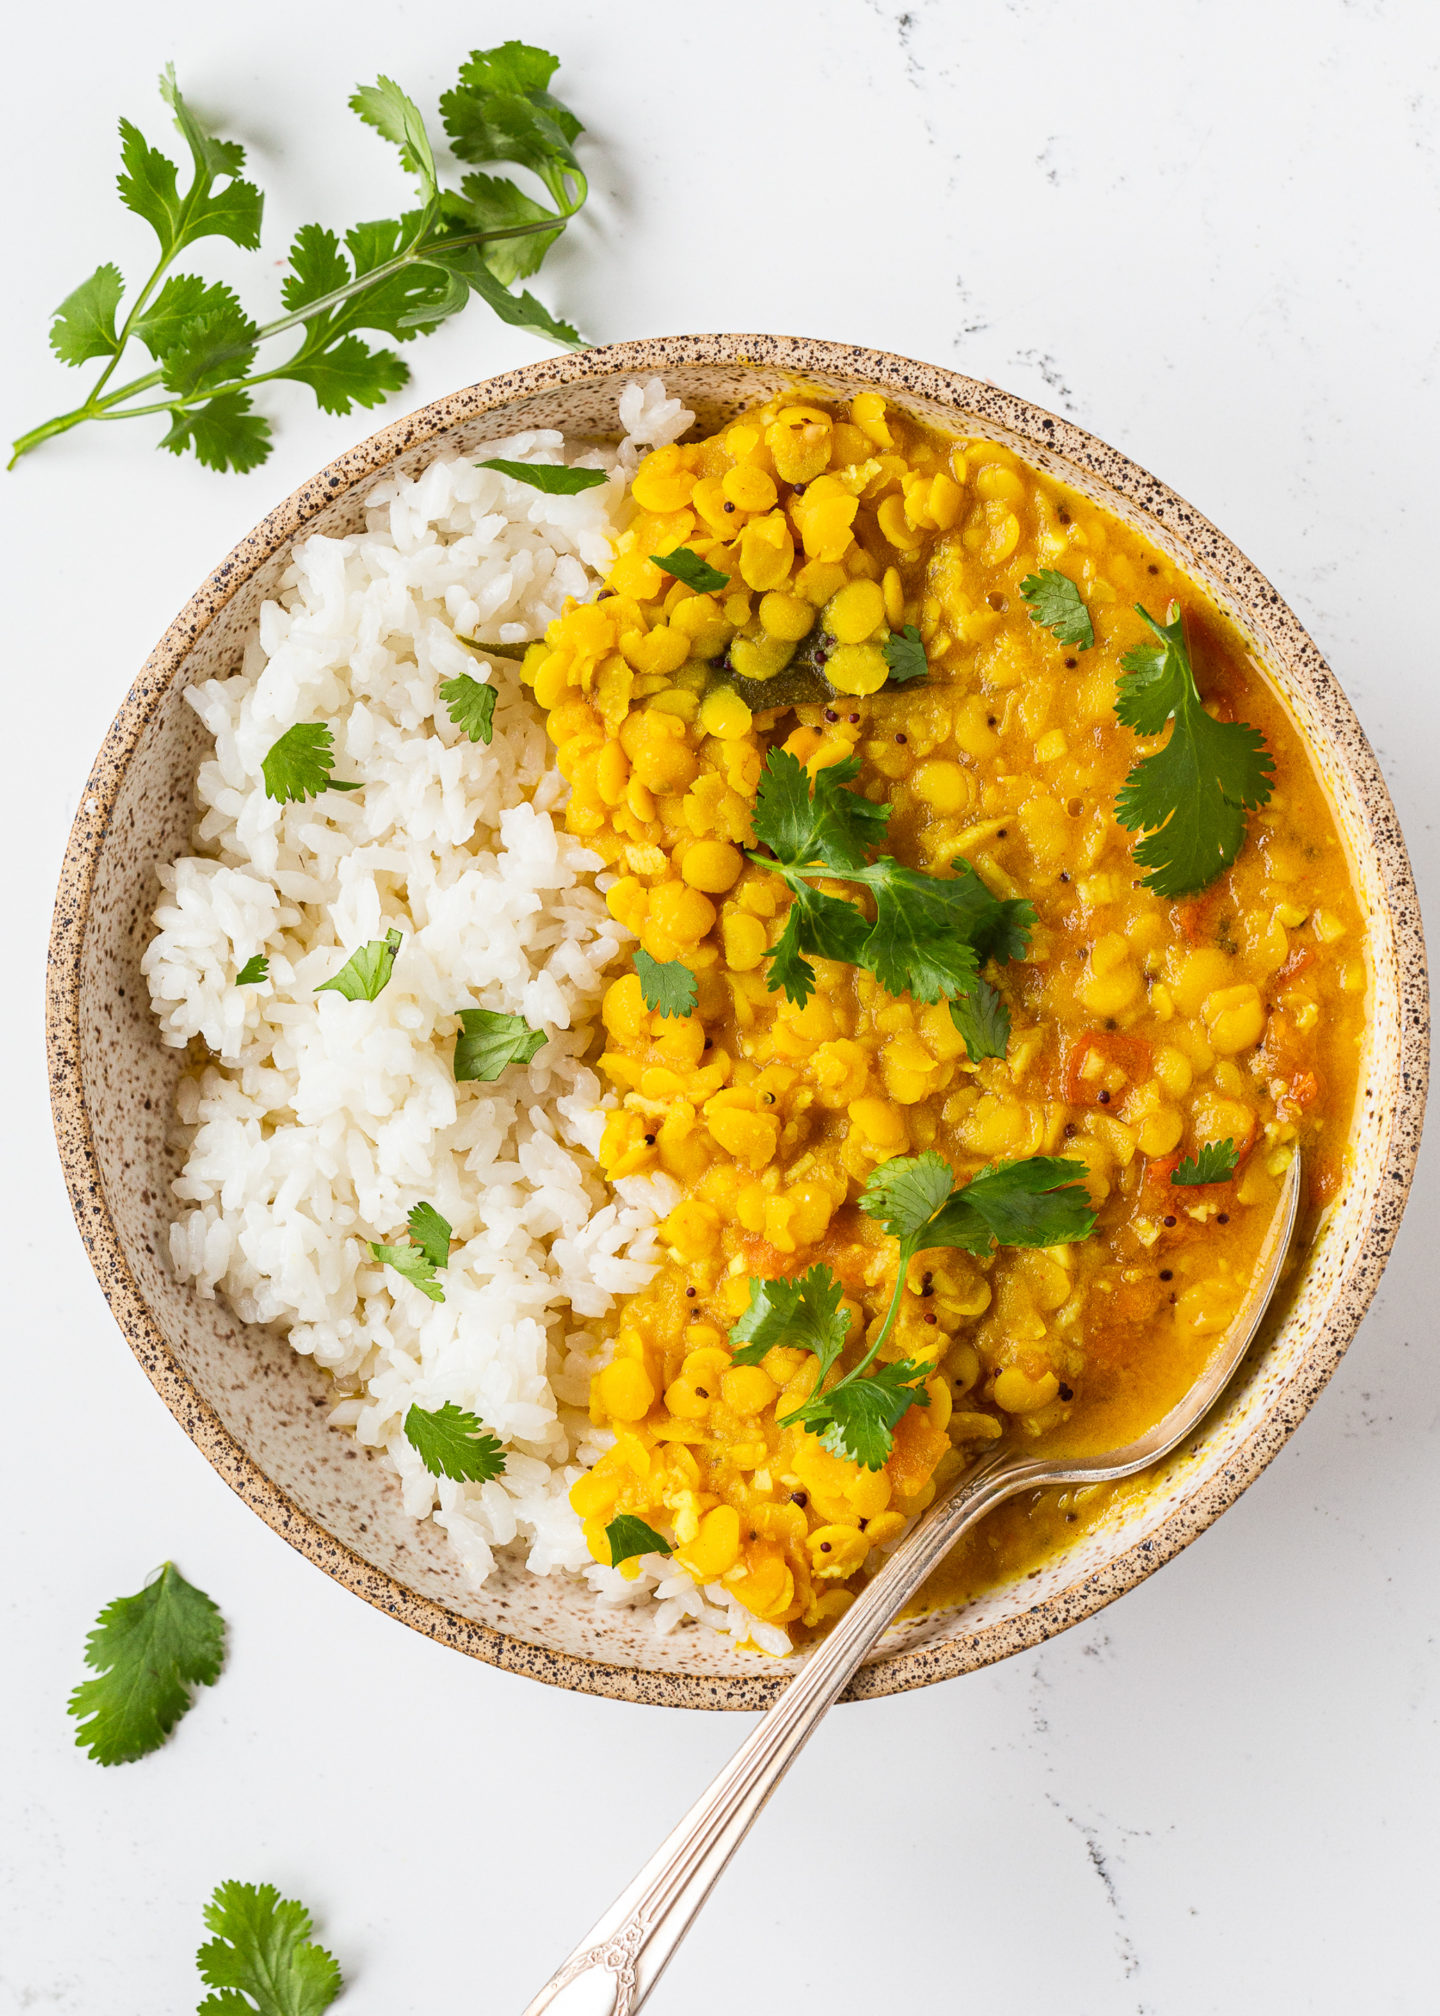 weet and Sour Yellow Lentils